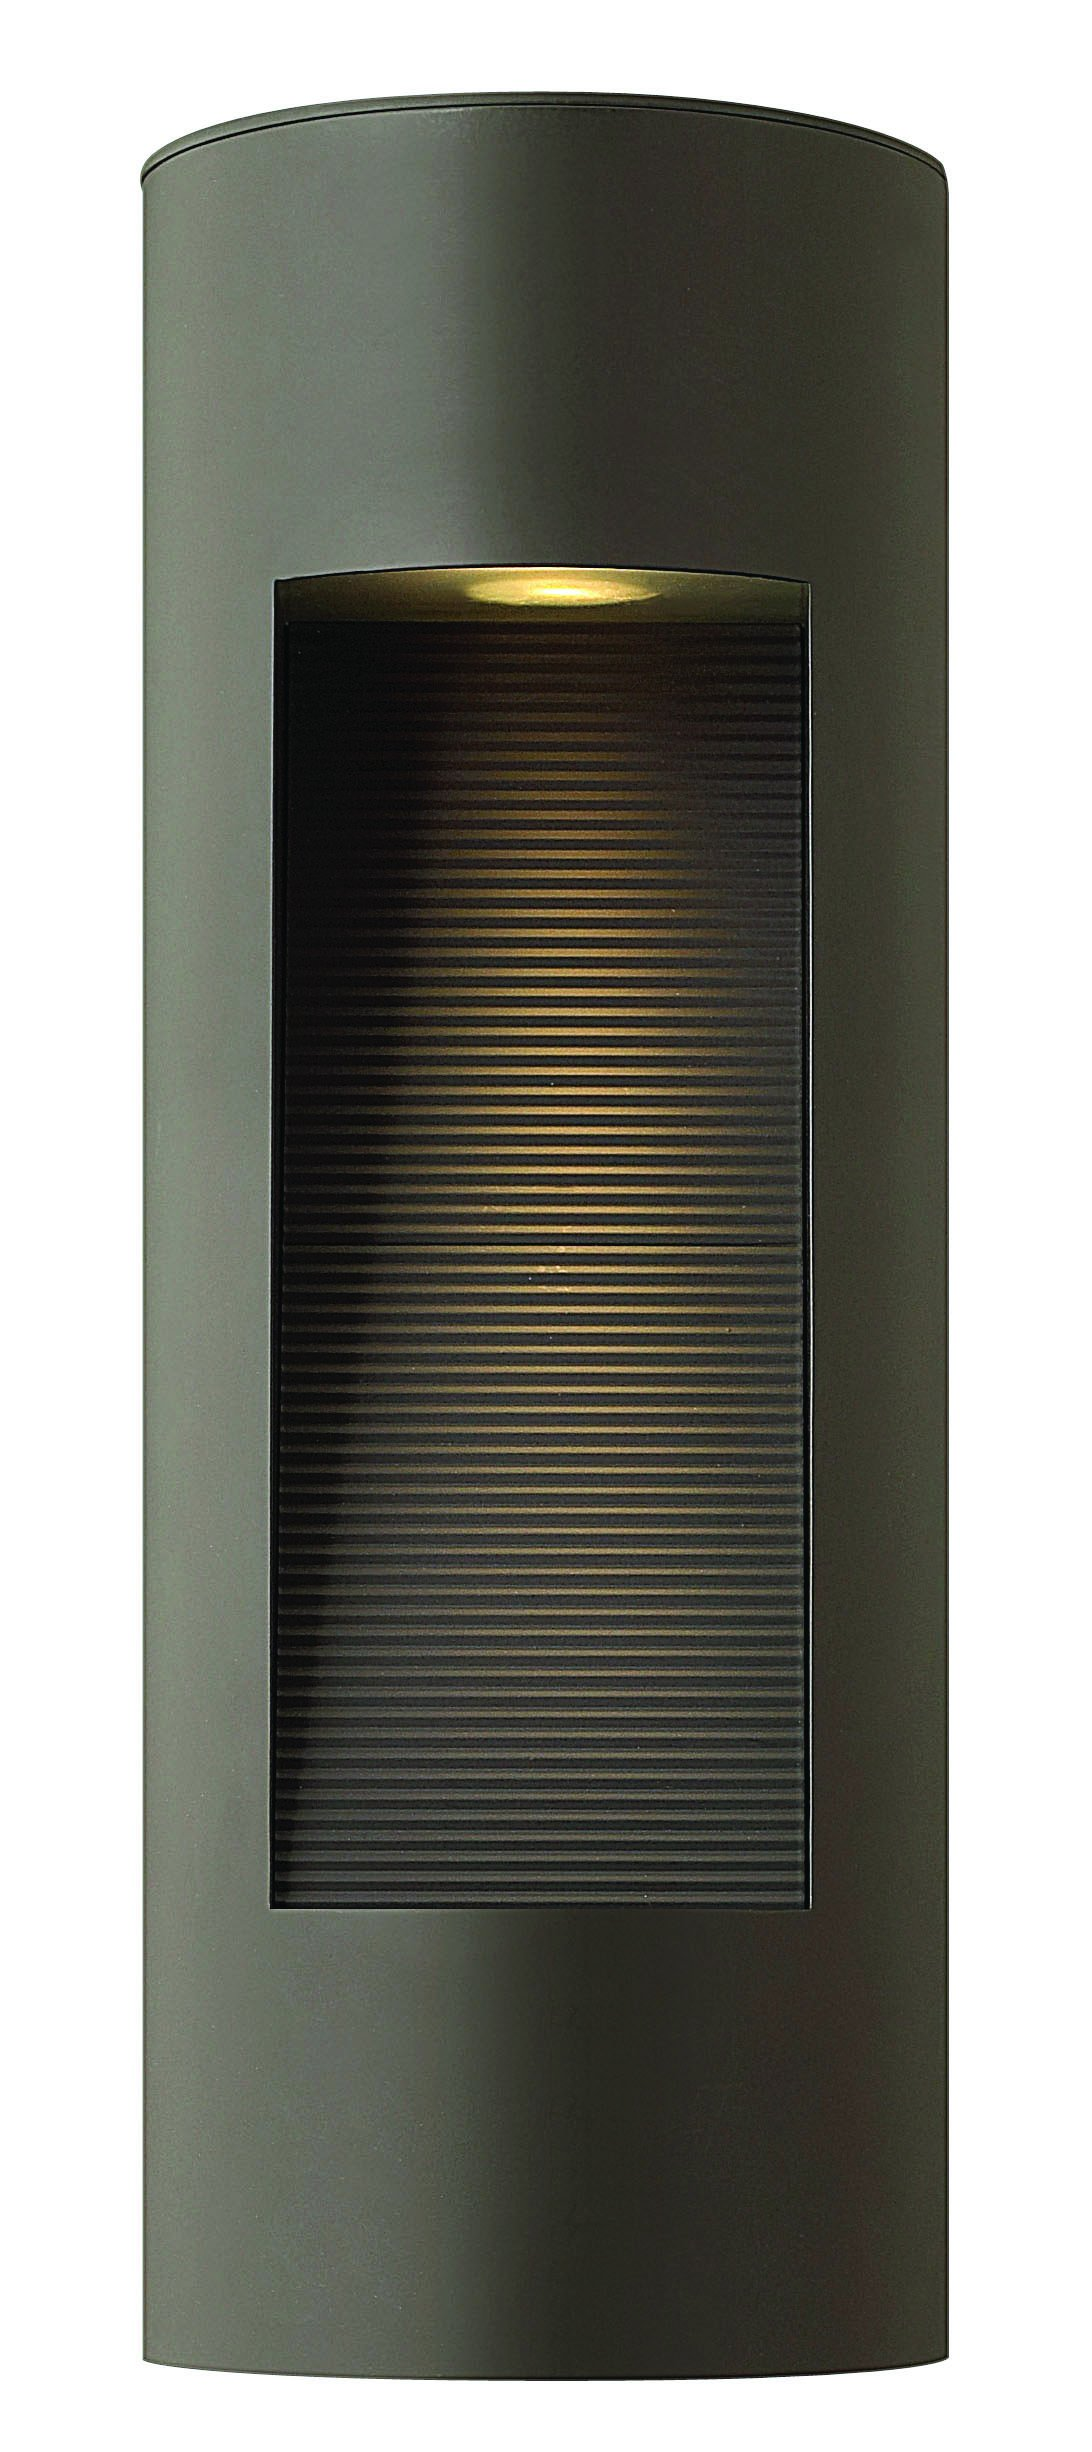 Hinkley 1660BZ-LED Contemporary Modern Two Light Wall Mount from Luna collection in Bronze/Darkfinish, by Hinkley